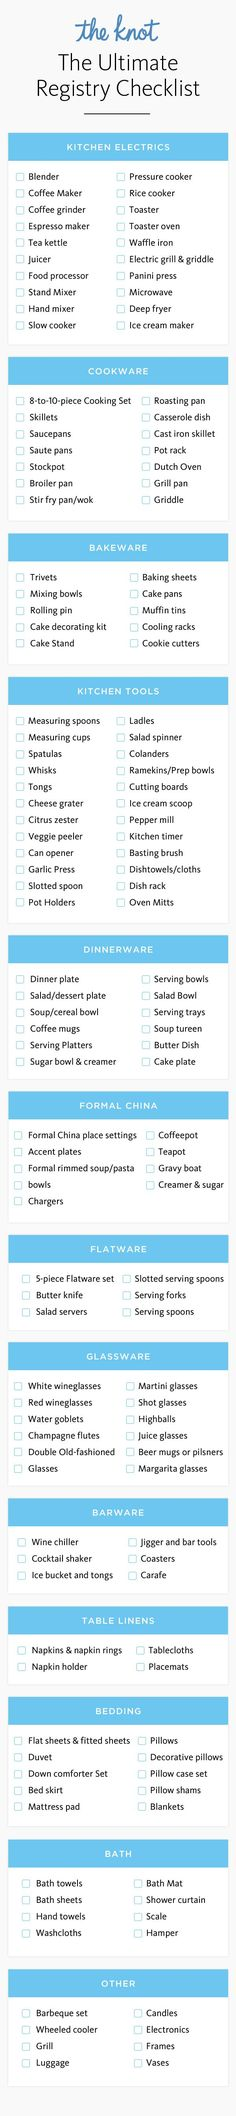 Ready to register? Whether you're just starting or you're putting the finishing touches to your perfect registry, make sure you've checked off all of your wedding registry essentials with our interactive checklist. Don't forget to print your custom list once you're finished!